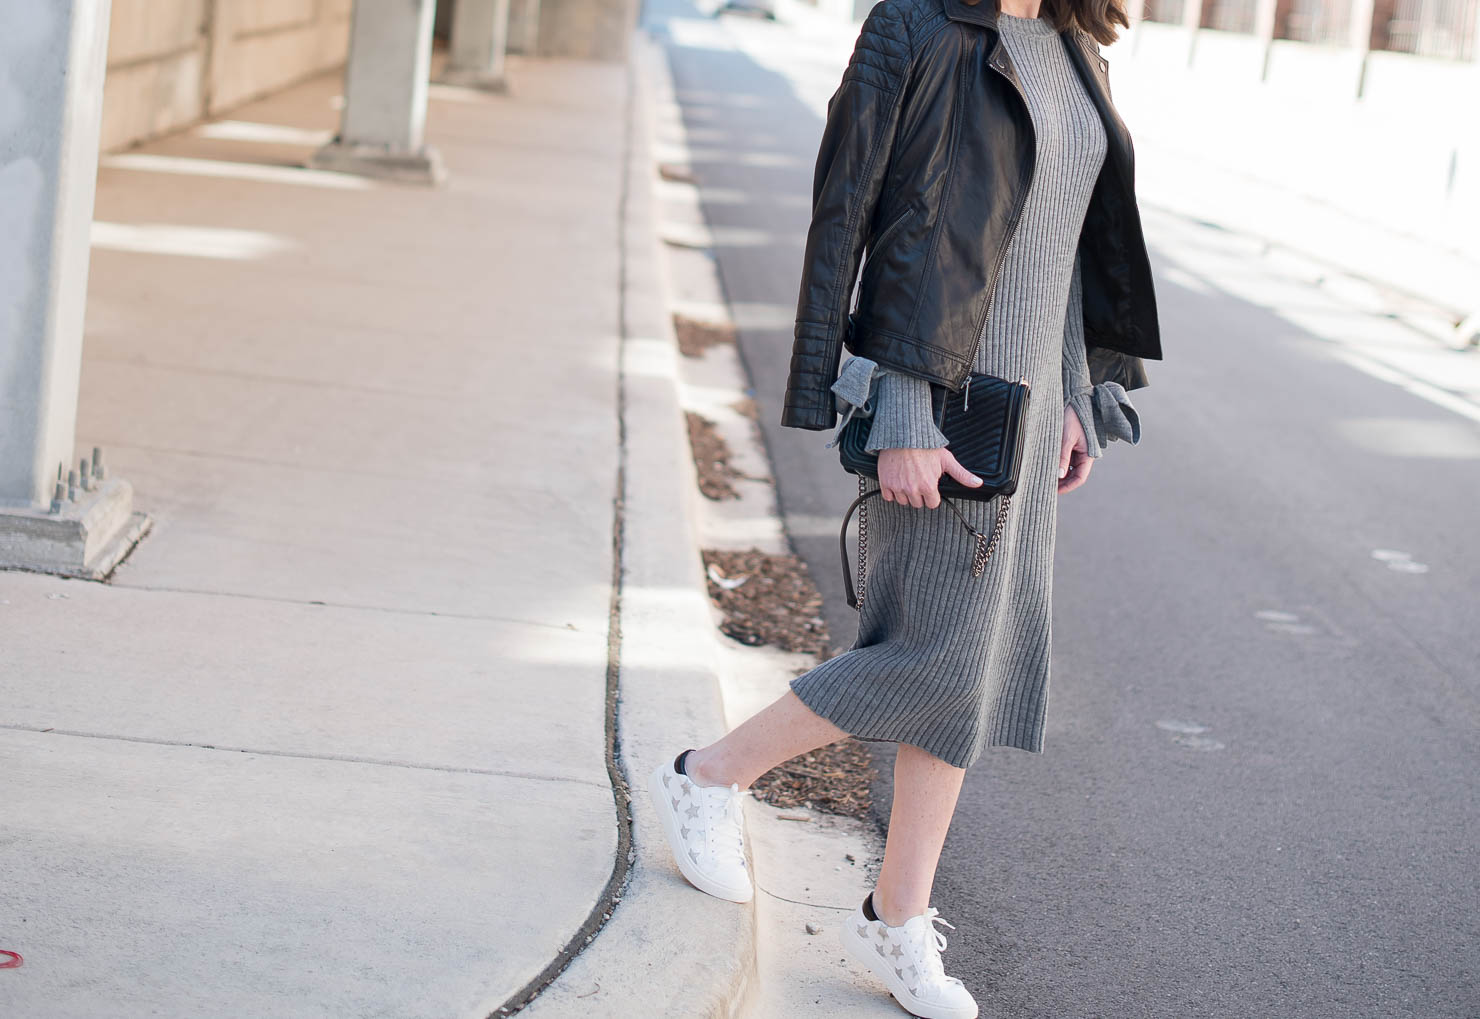 transitional fashion, taking your sweater dress into spring, asos, tie cuff, bell sleeves, leather moto jacket, star embellished sneakers